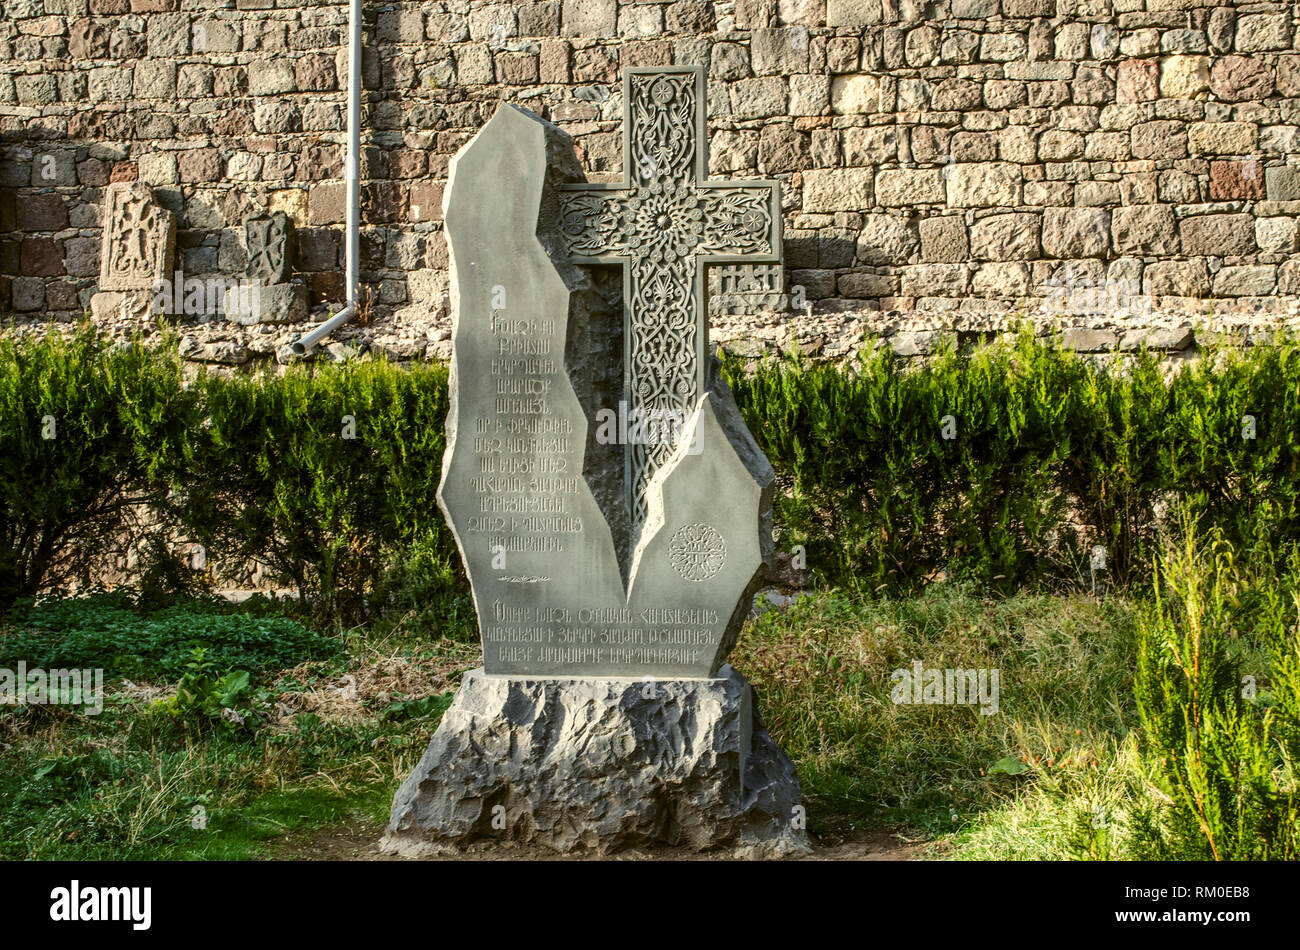 Geghard, Armenia, October 20, 2018:Khachkar from basalt carved as a donative to the monastery and installed in the Park near the stone wall, located a - Stock Image